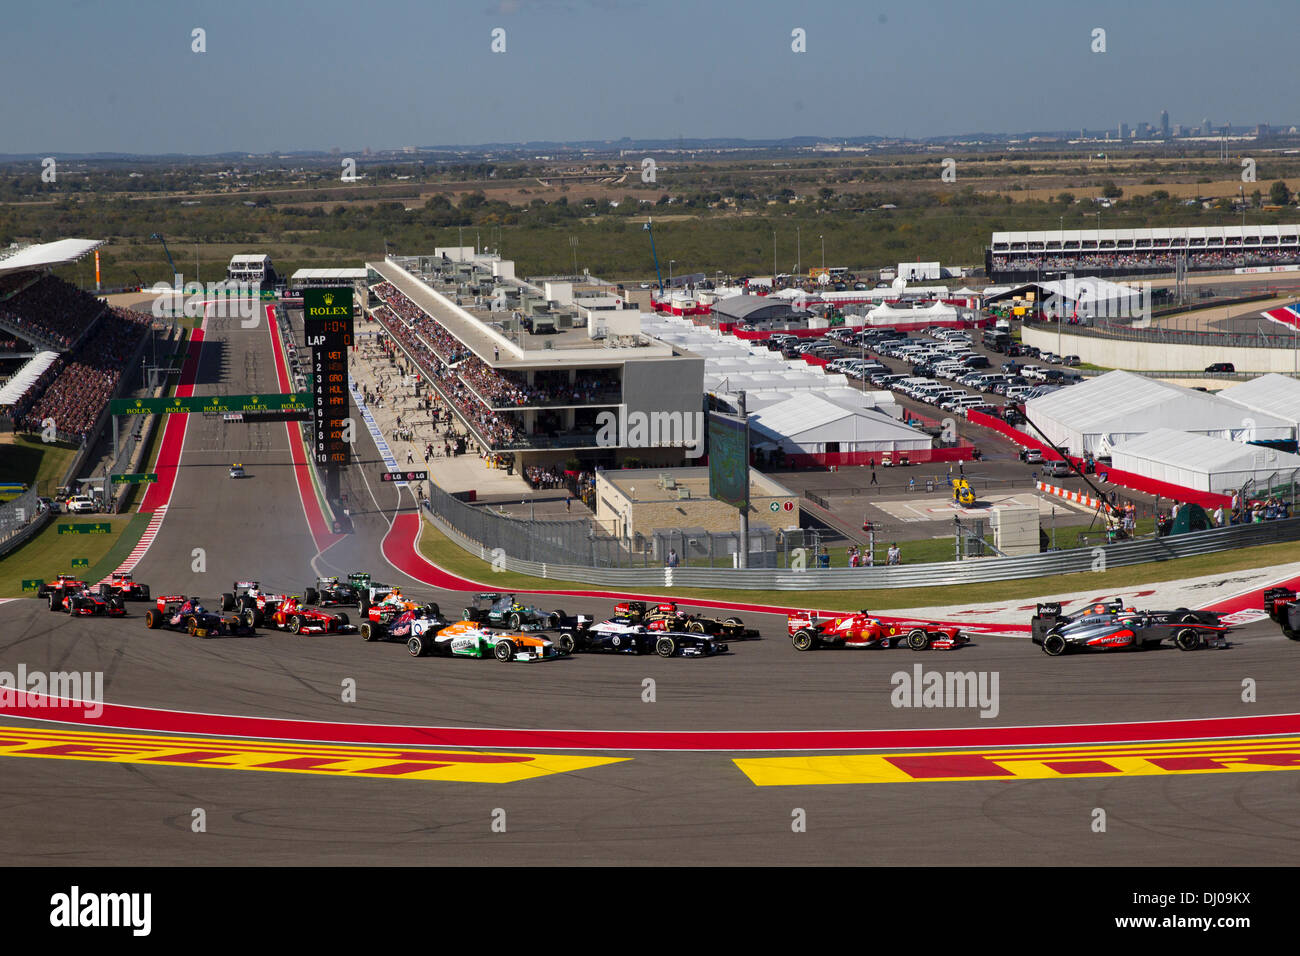 The first lap of the Formula 1 United States Grand Prix at the Circuit of the Americas track near Austin, TX. - Stock Image